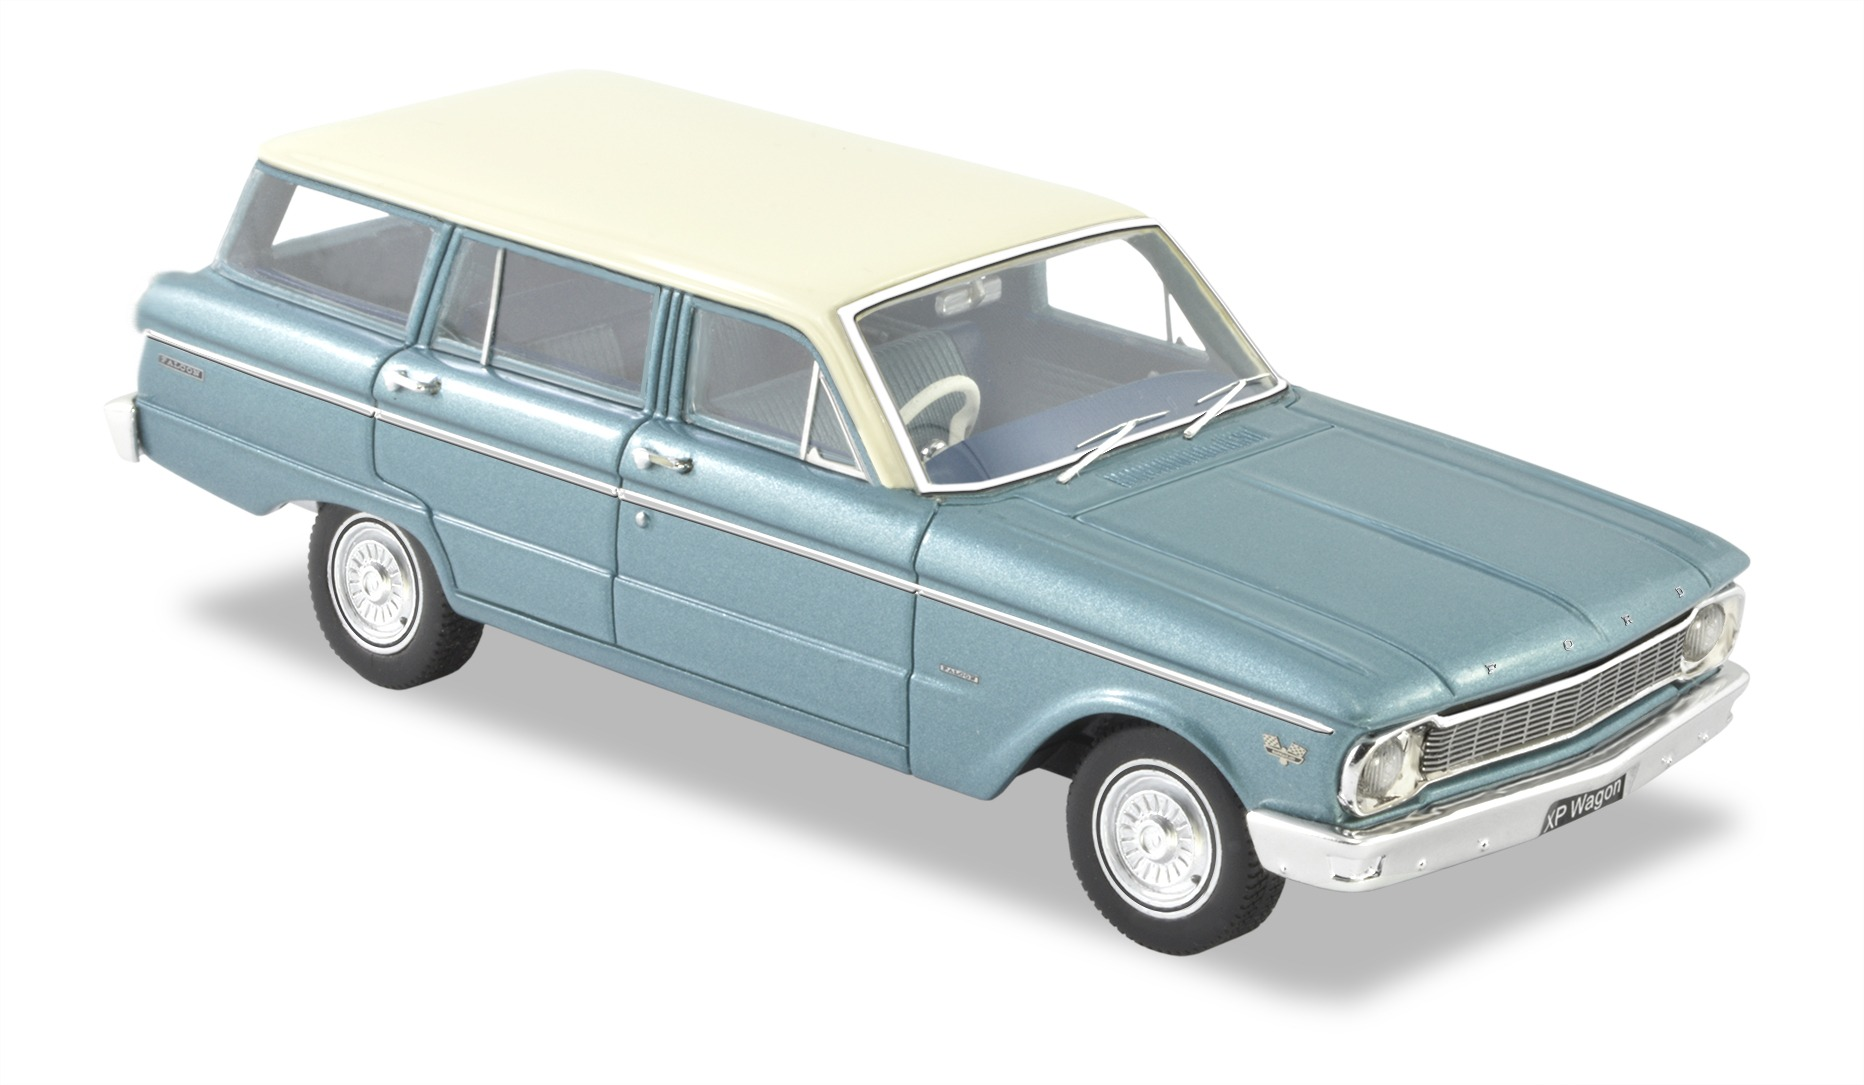 1965 Ford XP Falcon Deluxe Station Wagon – Silver Blue.